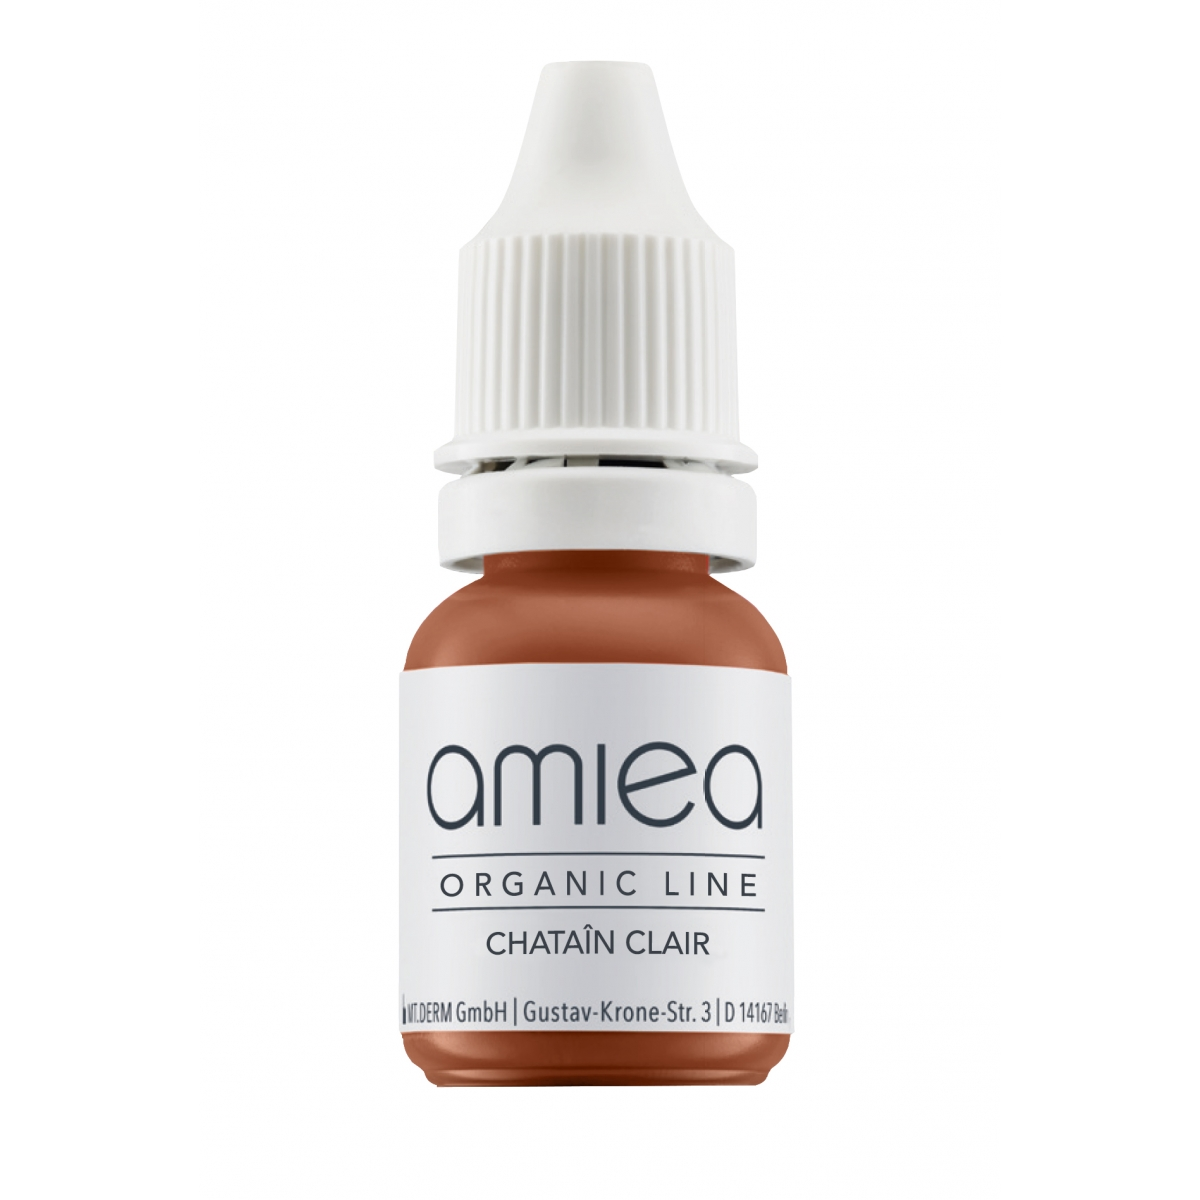 ORGANIC LINE (5ml)  - PIGMENT CHATAIN CLAIR ORGANICLINE AMIEA (5 ml)